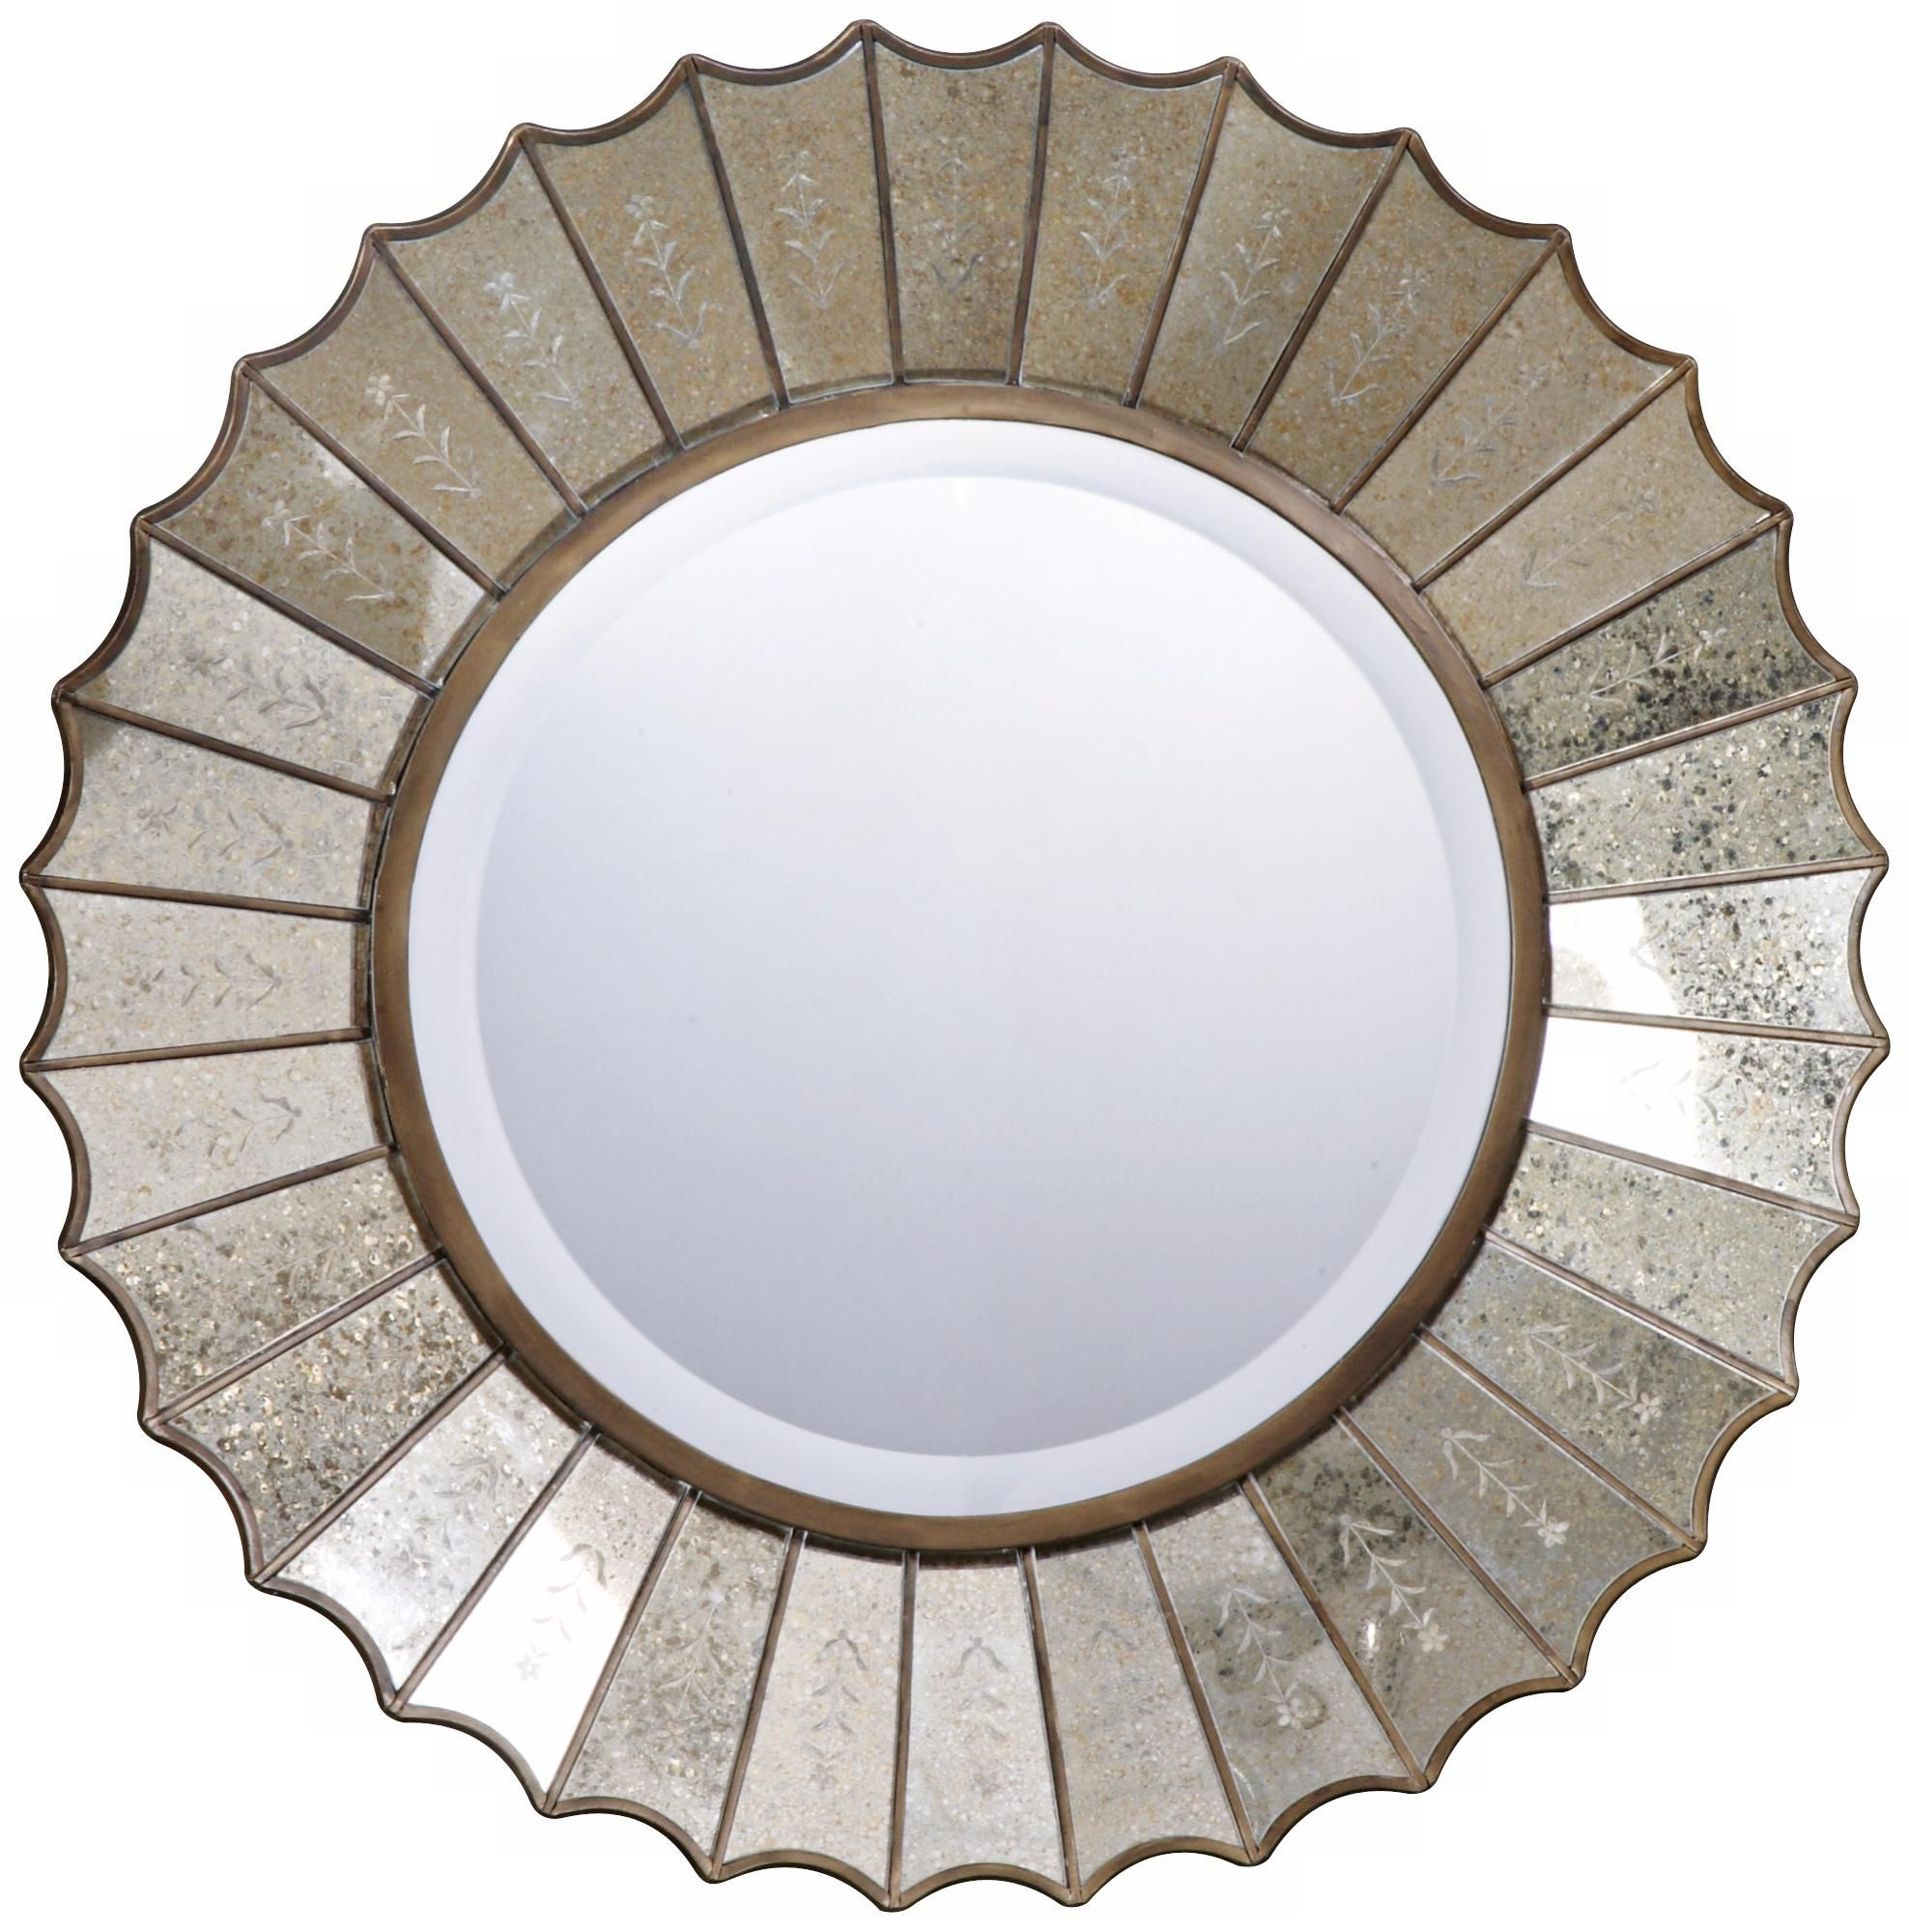 Uttermost amberlyn round 32 wide wall mirror wall mirror design uttermost amberlyn round 32 wide wall mirror amipublicfo Images